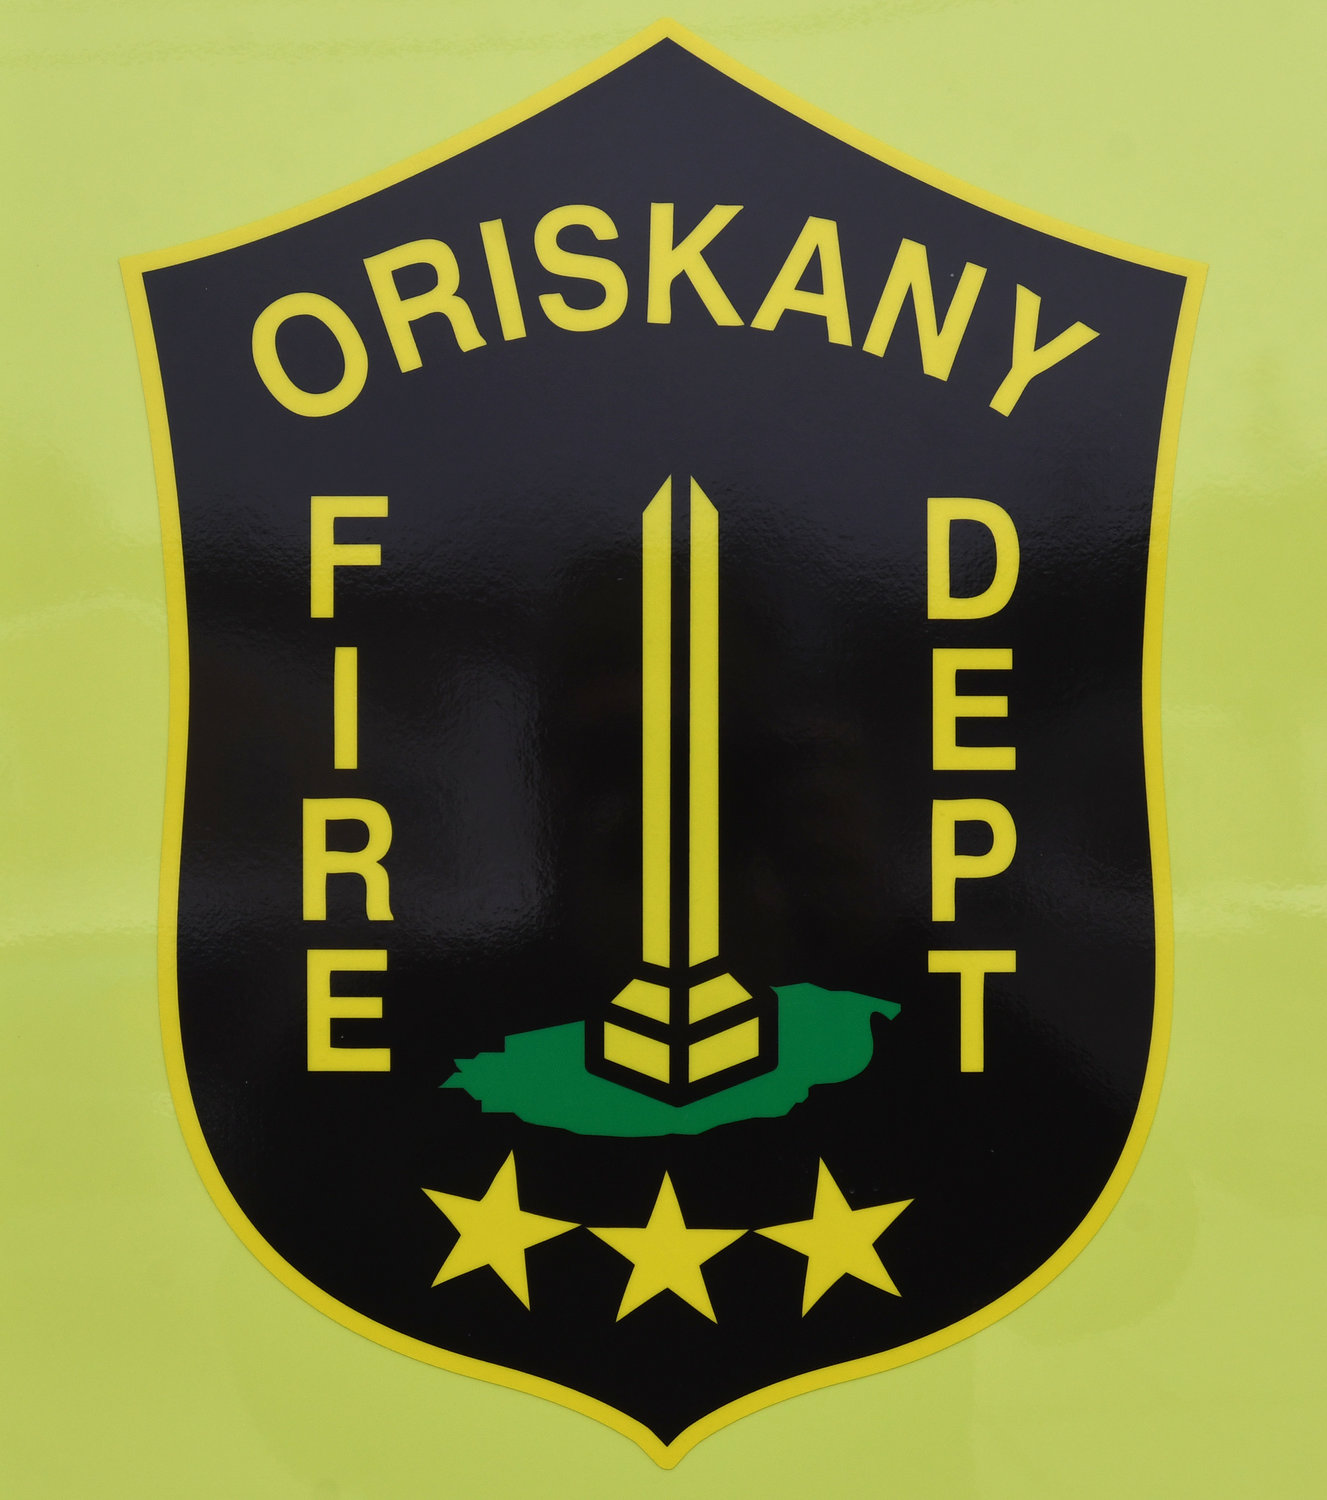 The shield on the side of the new Oriskany Fire Department tanker that was formally in service Friday night.